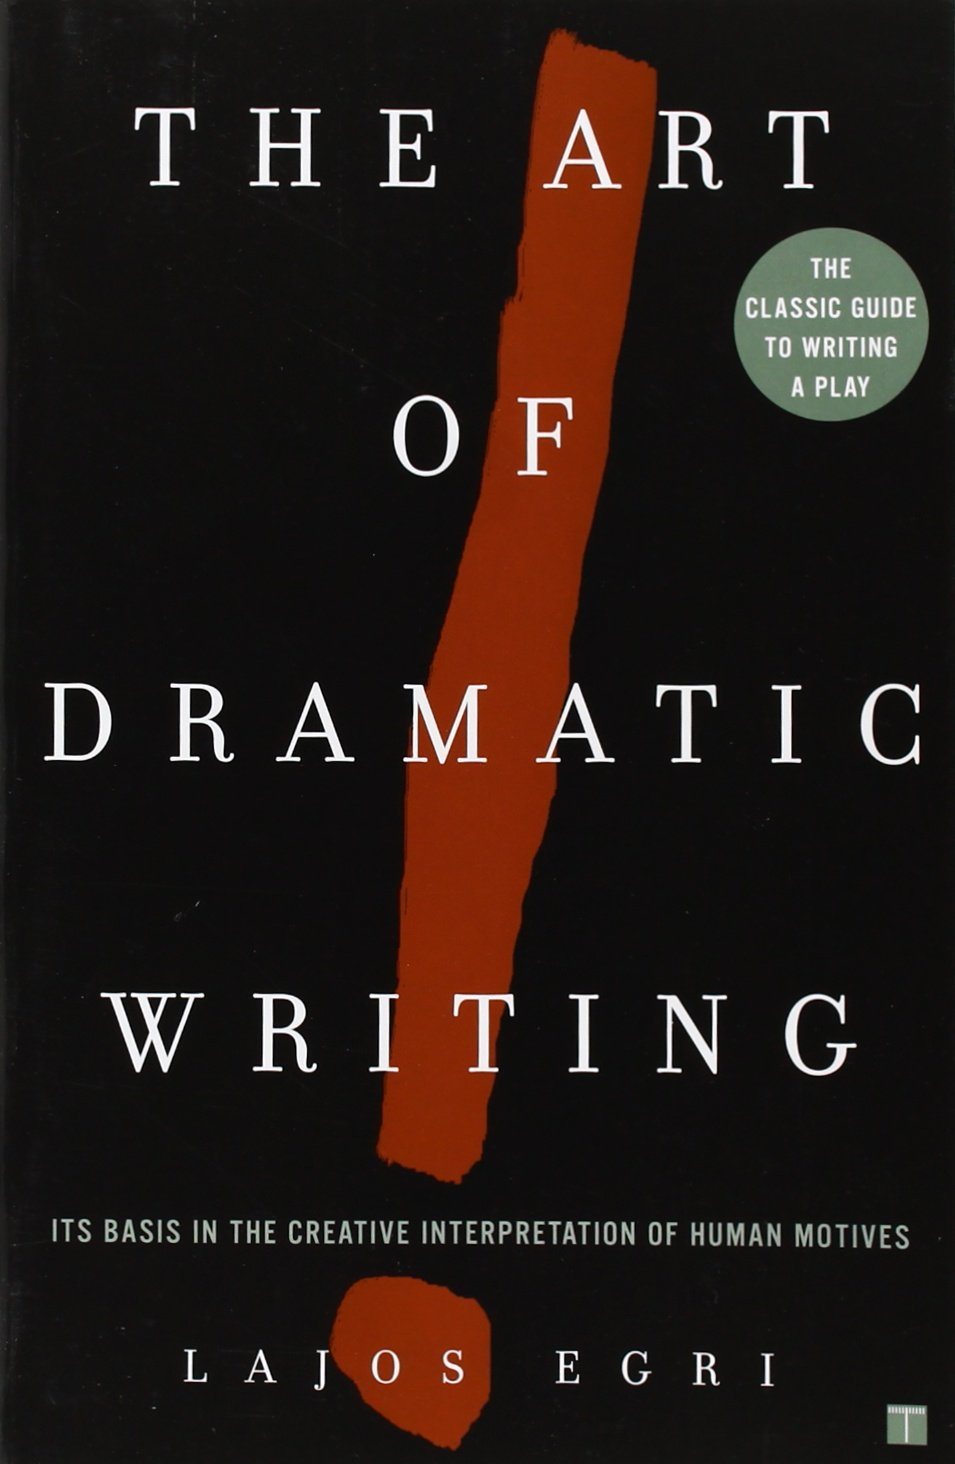 THE ART OF DRAMATIC WRITING: IT'S BASIS IN THE CREATIVE